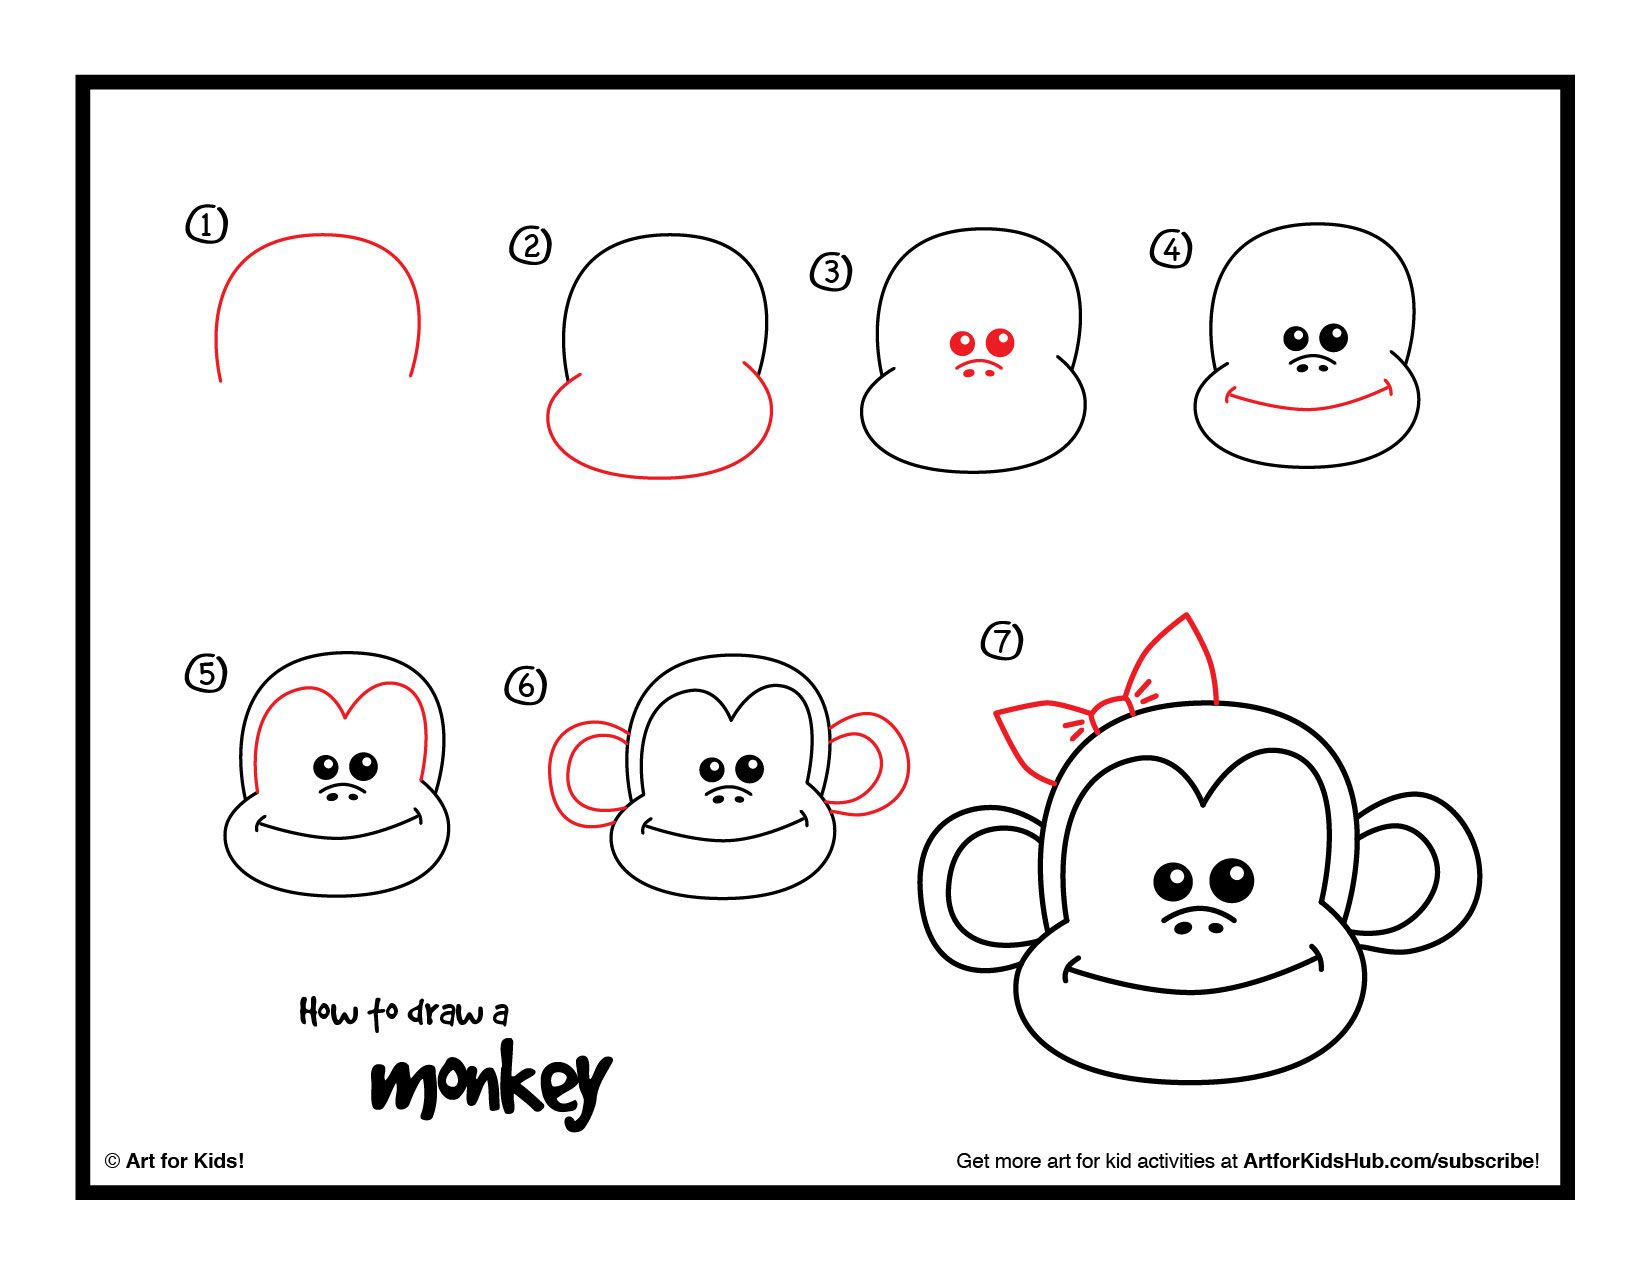 How To Draw A Monkey - Art For Kids Hub - | Monkey drawing ...